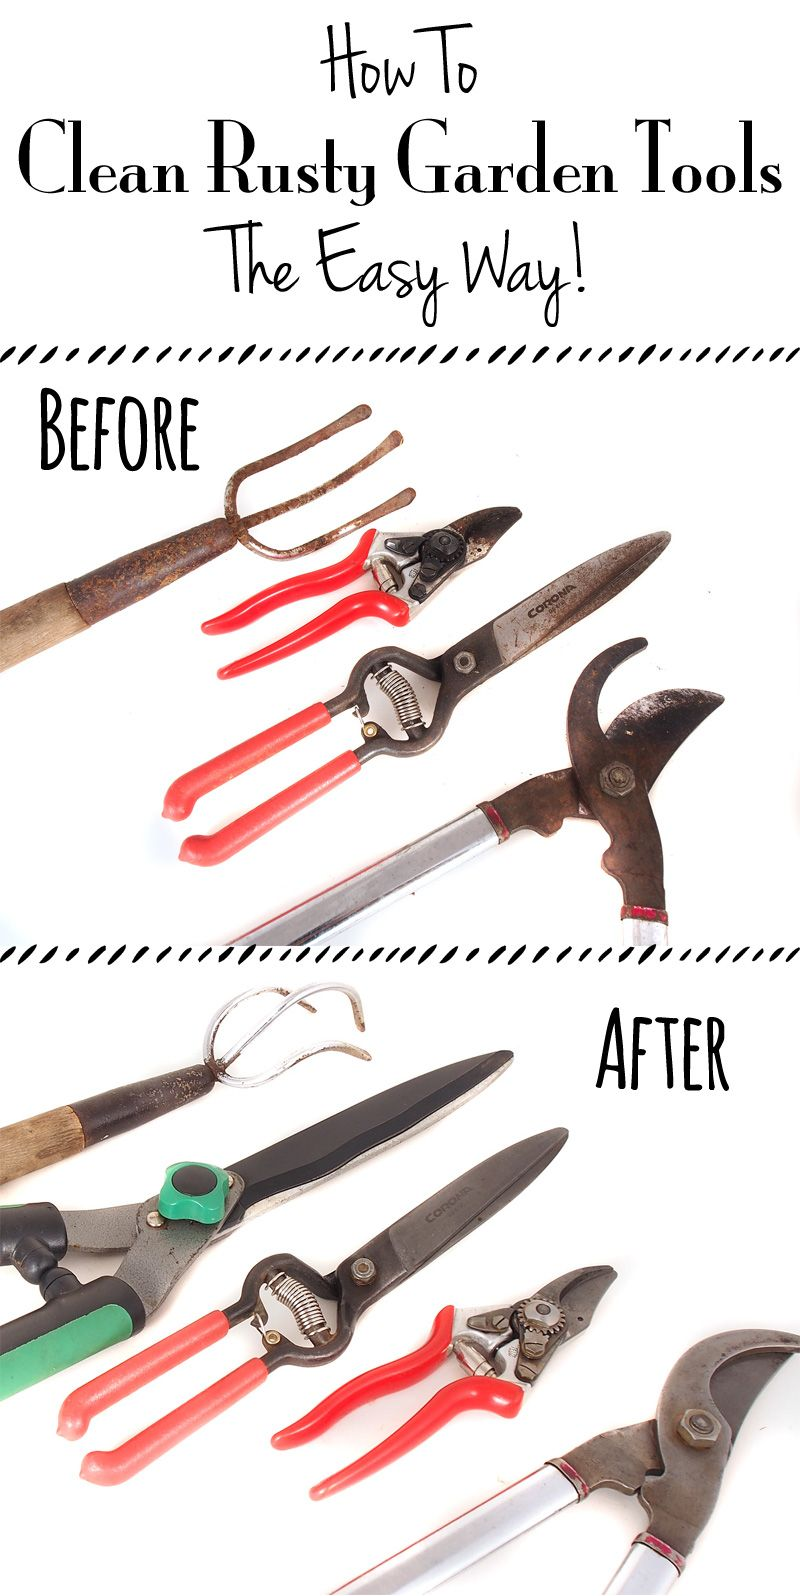 Incroyable {Garden} How To Clean Rusty Garden Tools   The Easy Way!   Growing.